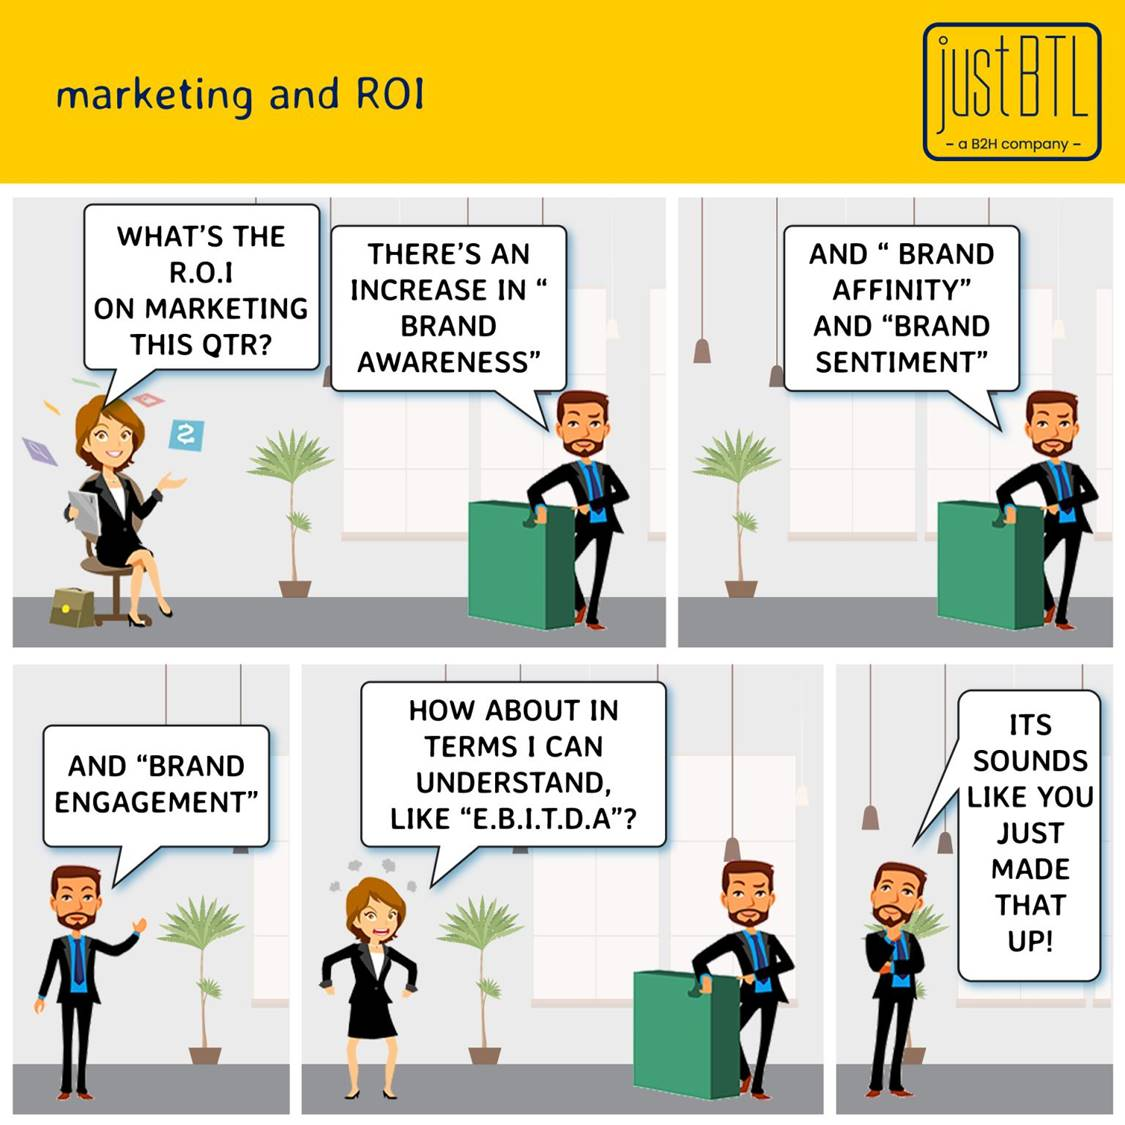 Marketing and ROI